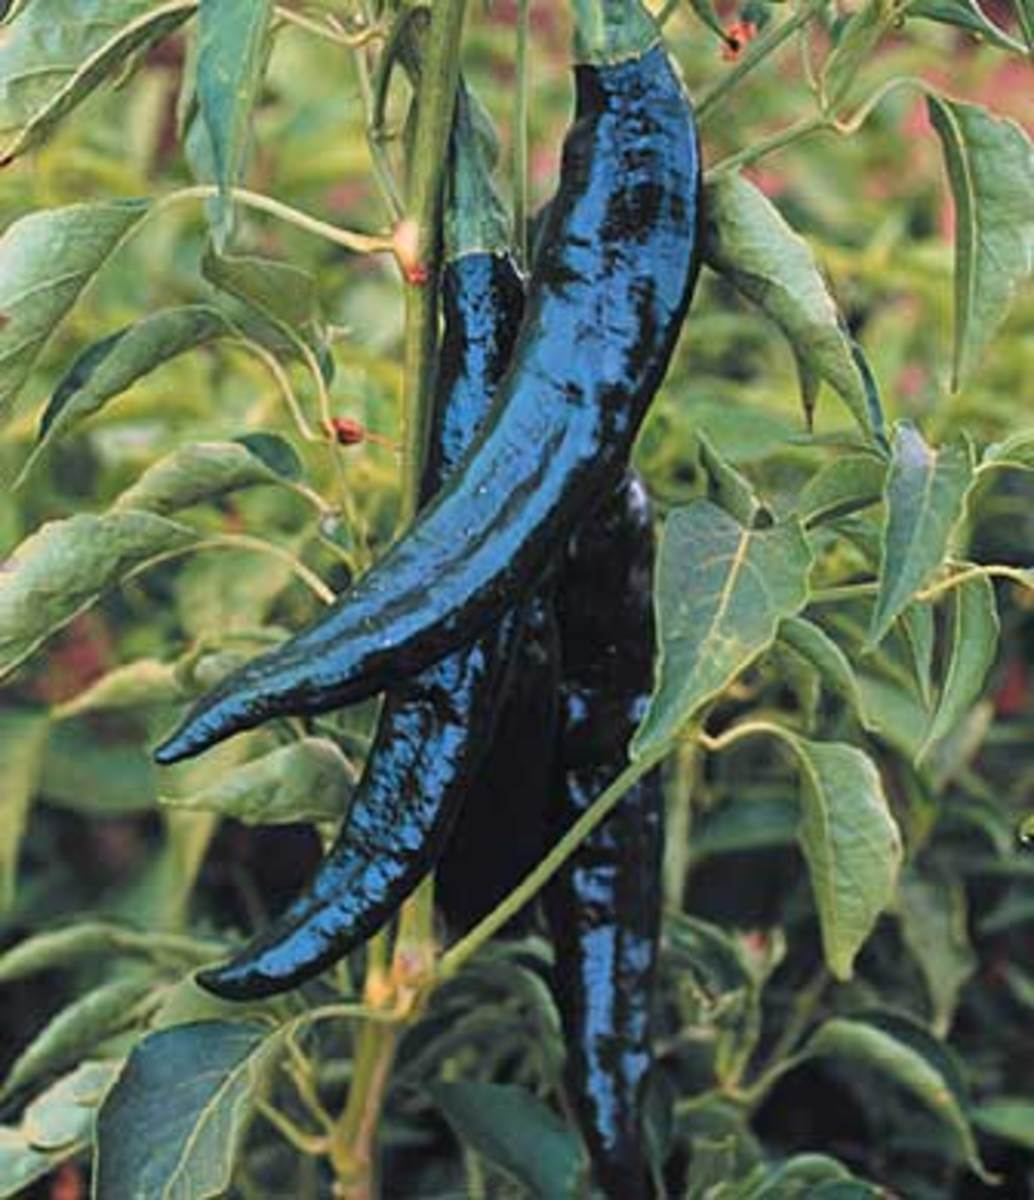 Pasilla Bajio. When fresh, this pepper is called chilaca; it is also known as chile negro. Eight- to 10-inch-long cylindrical peppers are thin walled, and dark green ripening to dark brown. They have less than 250 Scoville units.